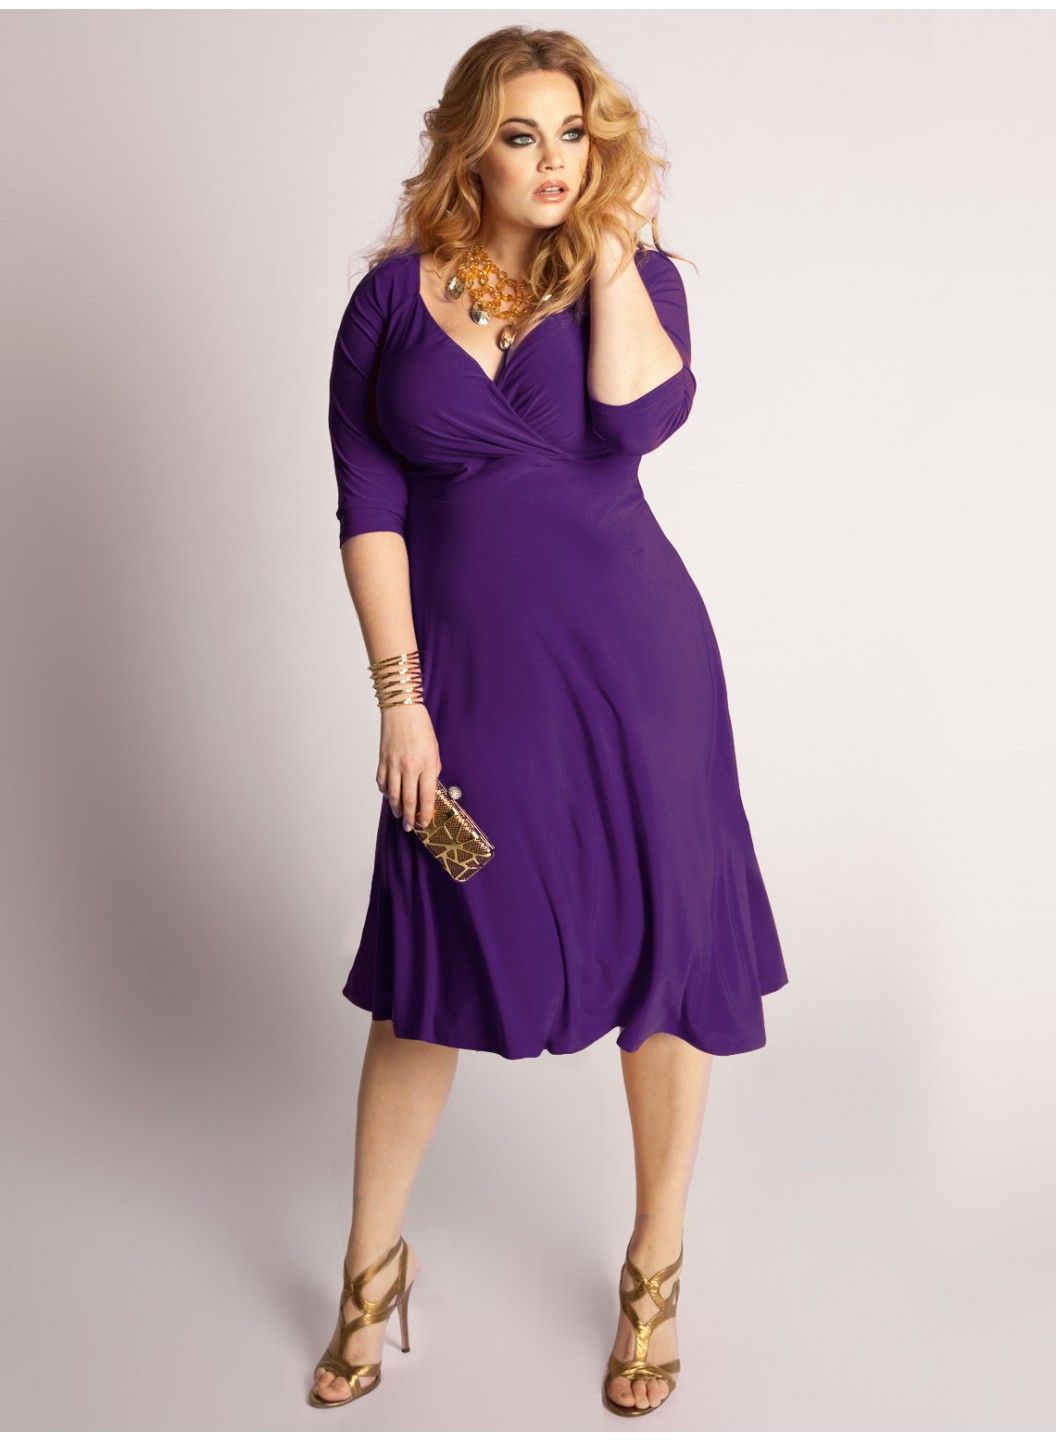 New Purple Plus Size Dresses for Weddings Check more at http ...